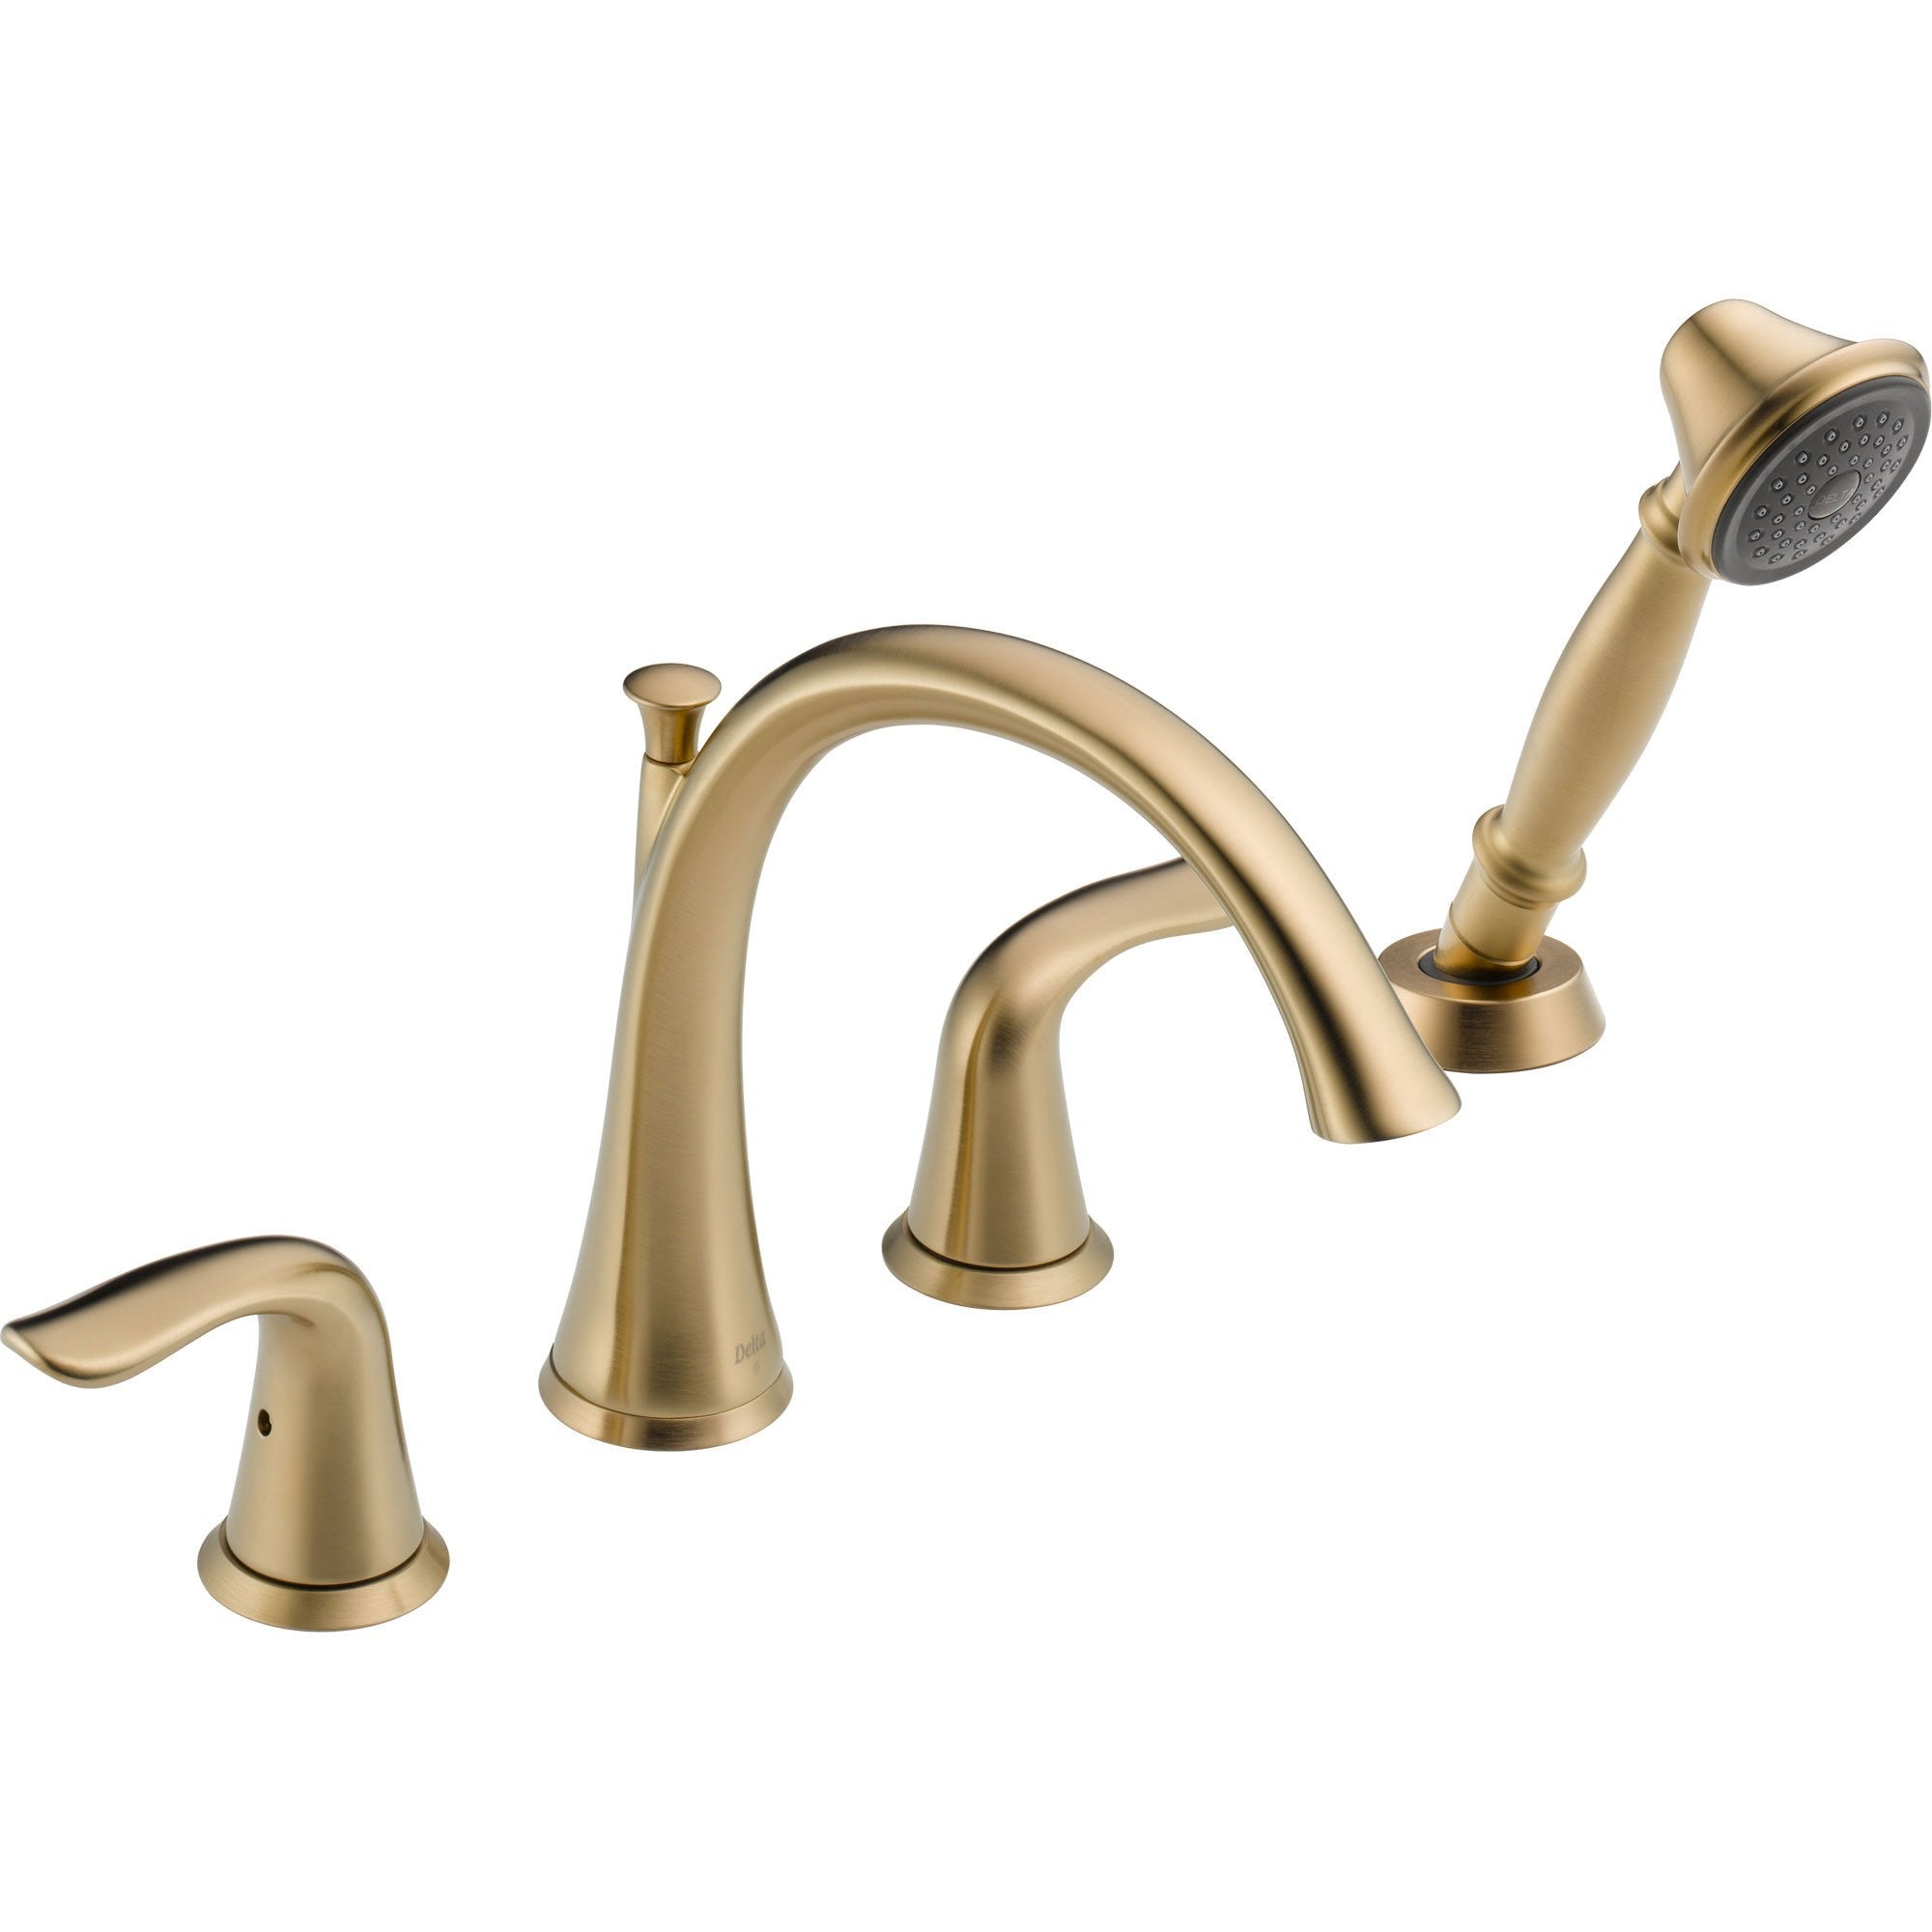 Delta Lahara Champagne Bronze Roman Tub Faucet with Handshower Trim Kit 564428